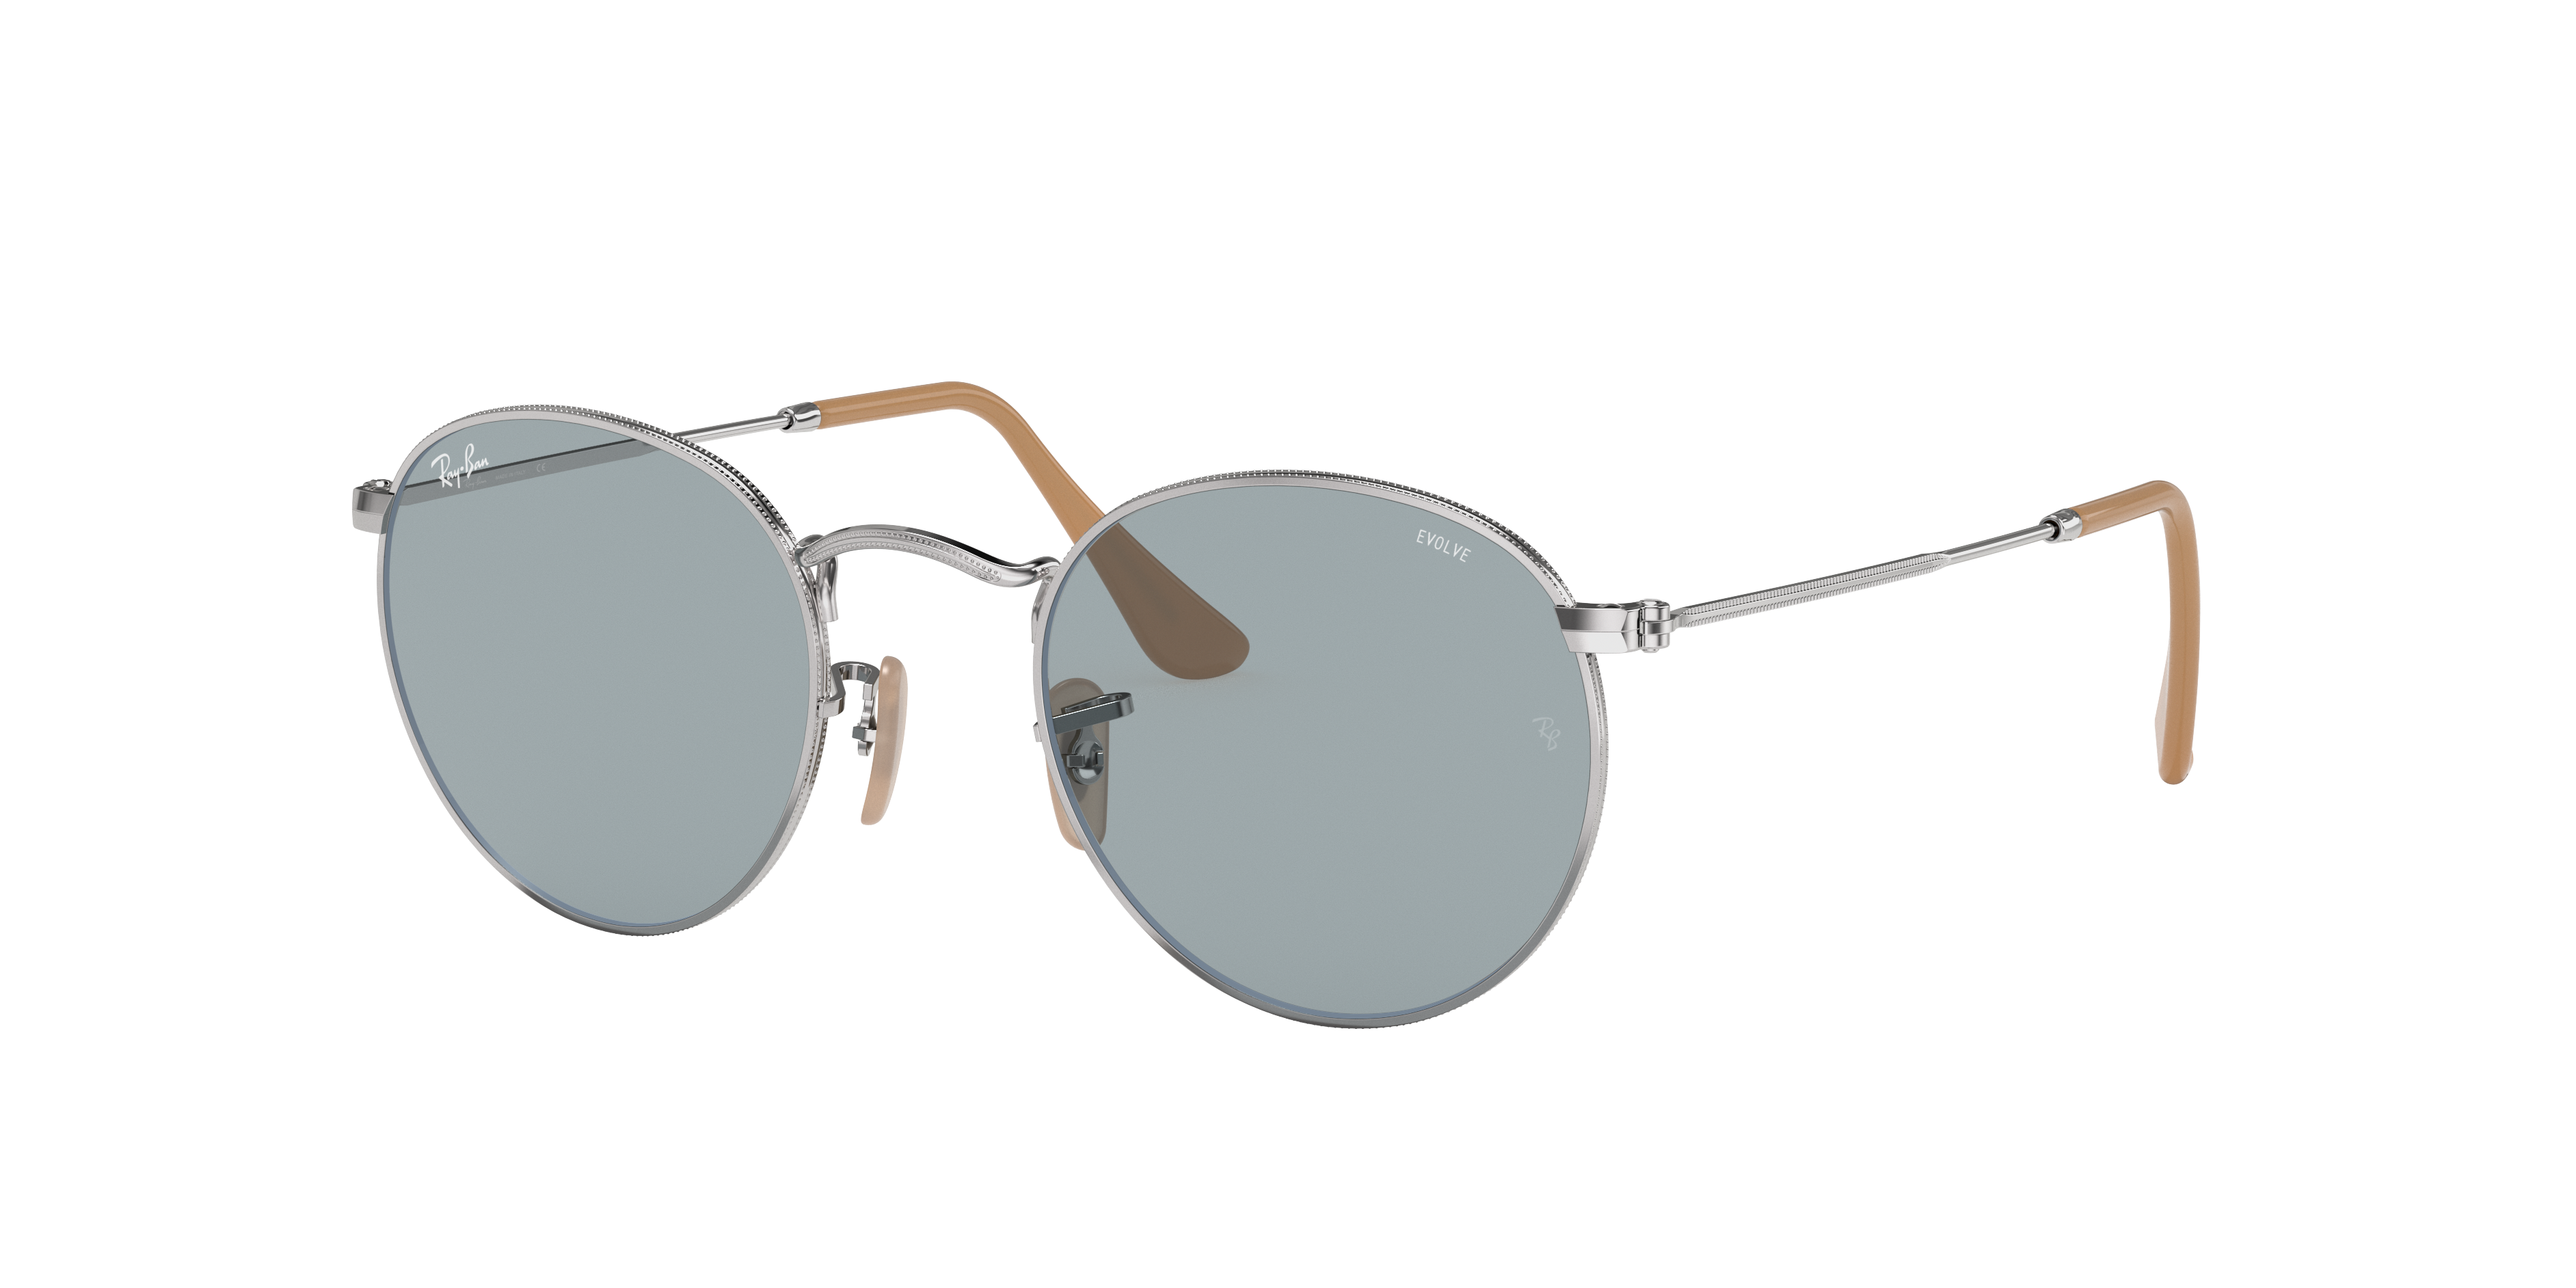 Ray-Ban Round Washed Evolve Silver, Blue Lenses - RB3447